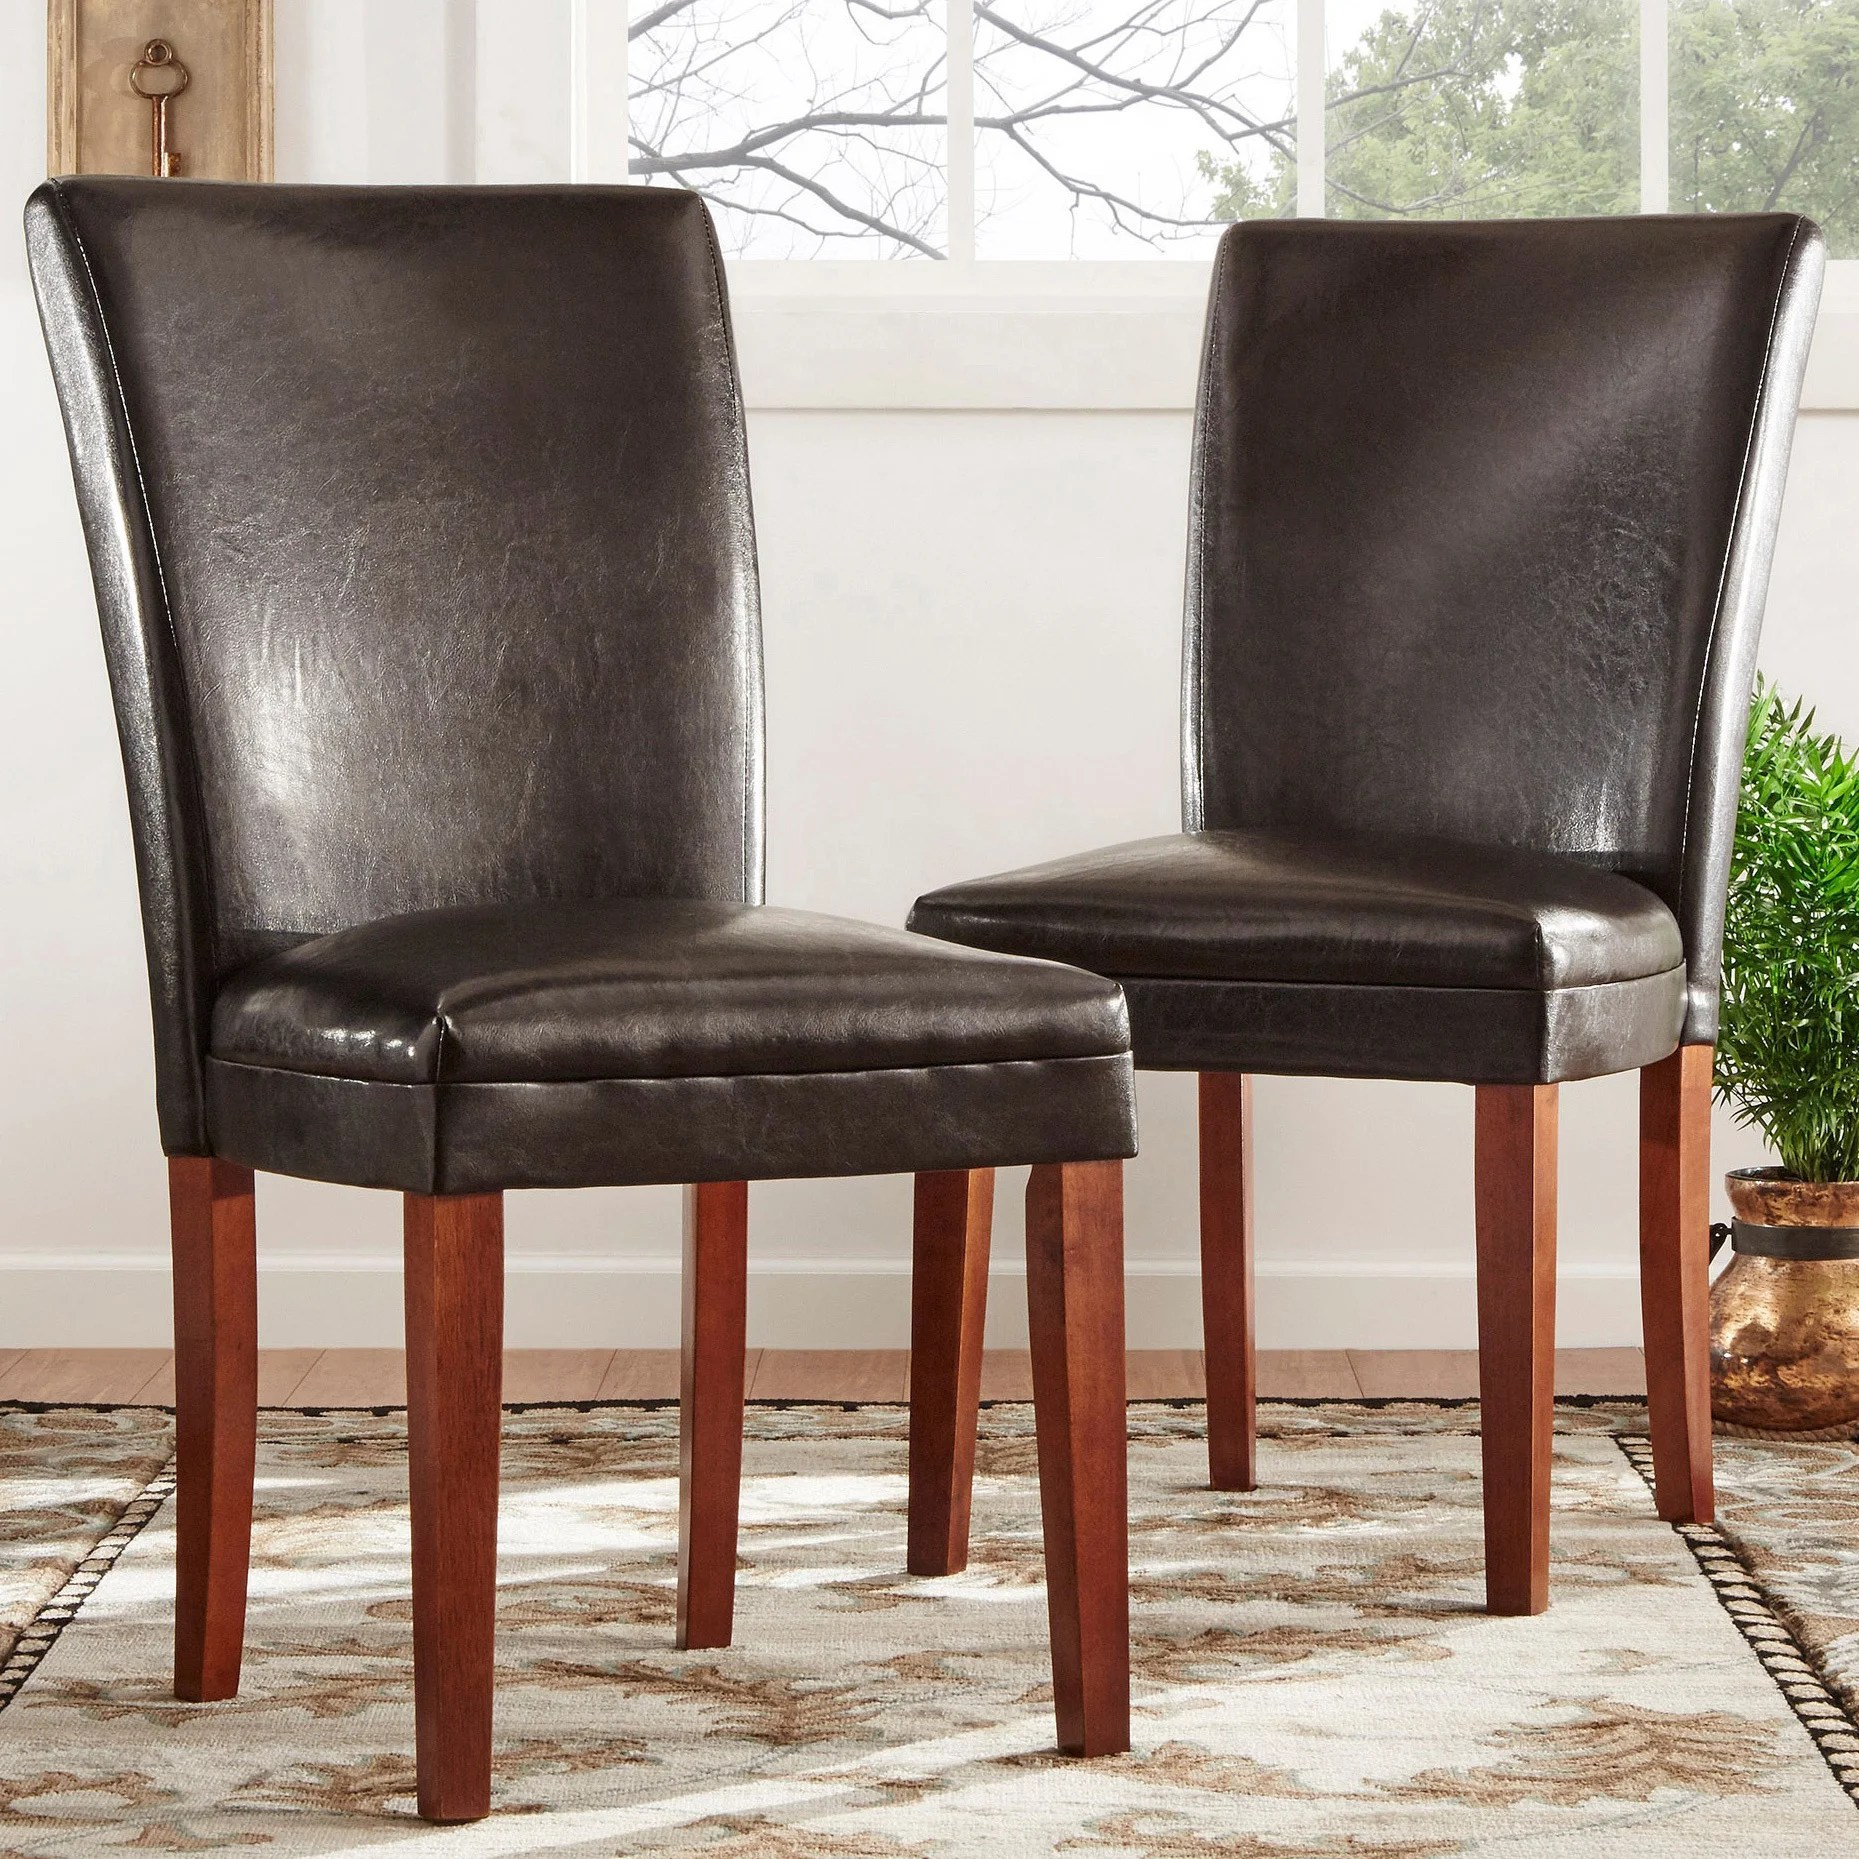 faux leather dining chairs chair design for terrace parson set of 2 by inspire q bold ebay